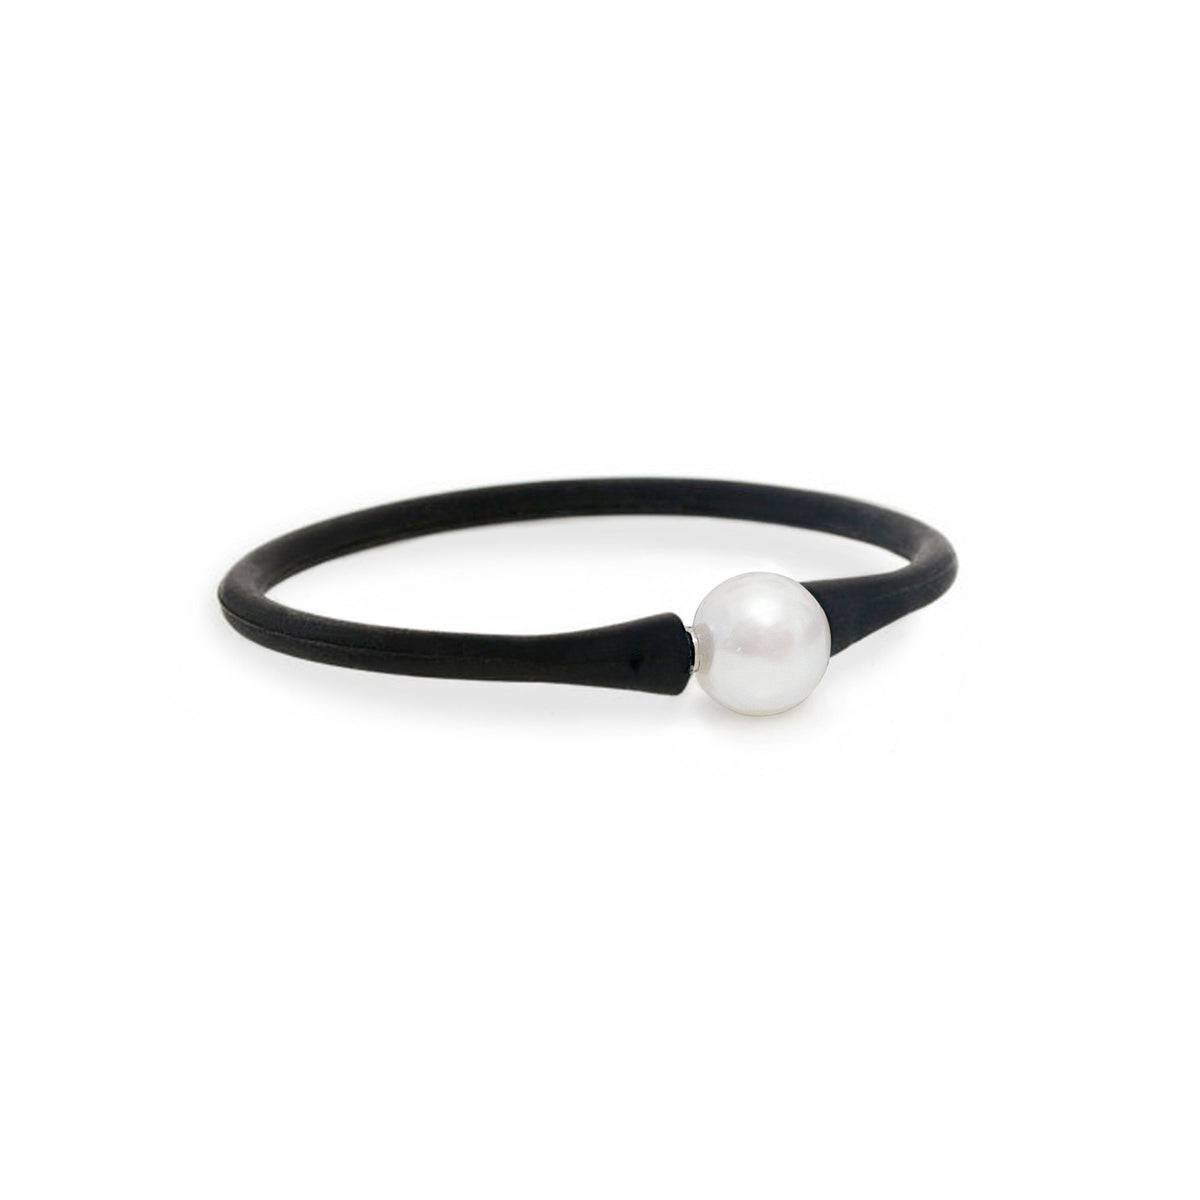 Neoprene Pearl Bracelet - 12mm CR